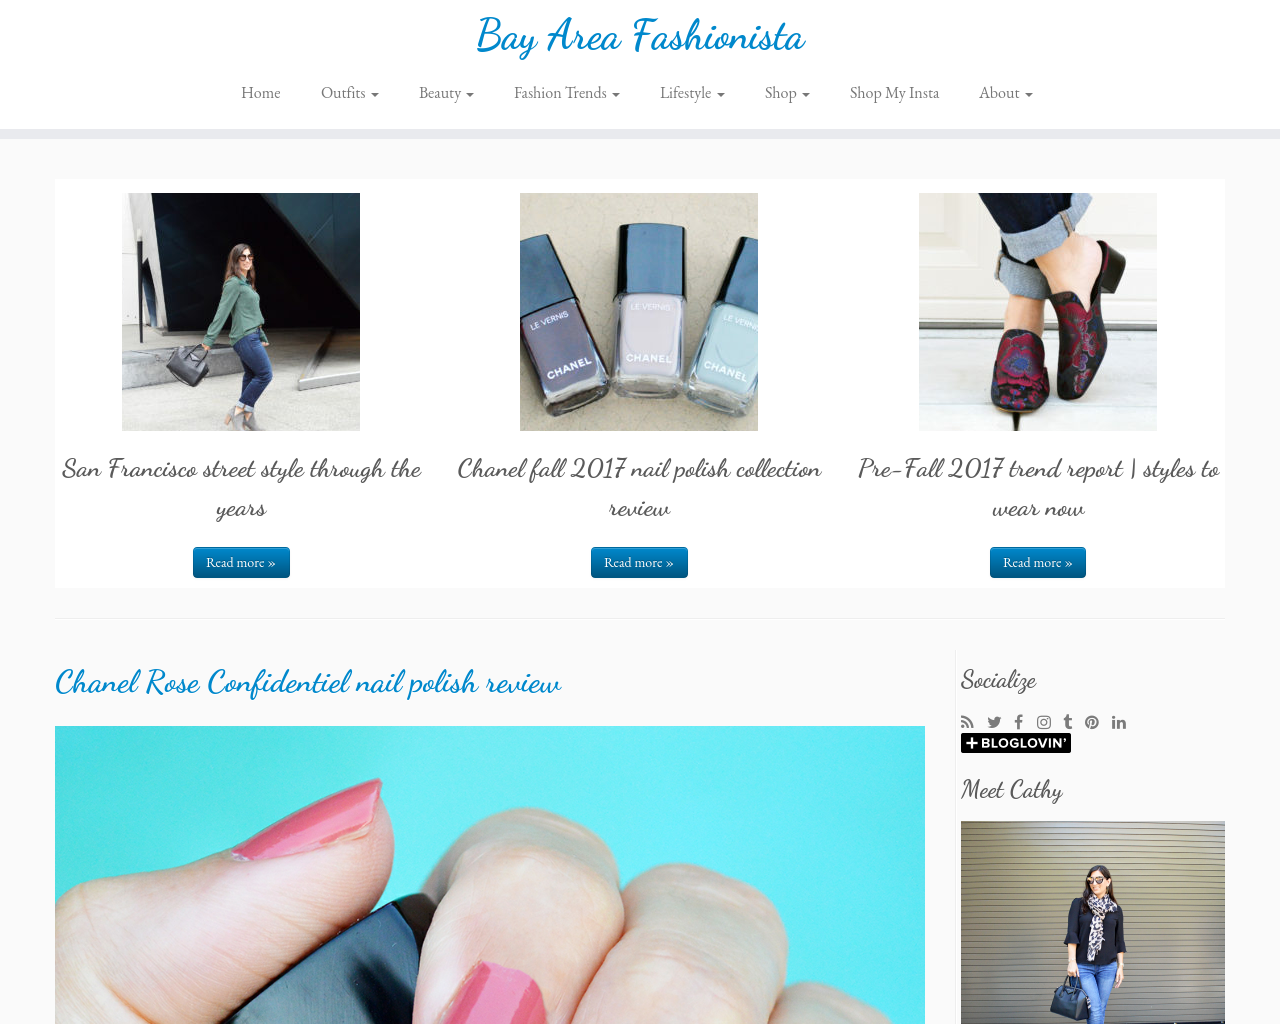 Bay-Area-Fashionista-Advertising-Reviews-Pricing